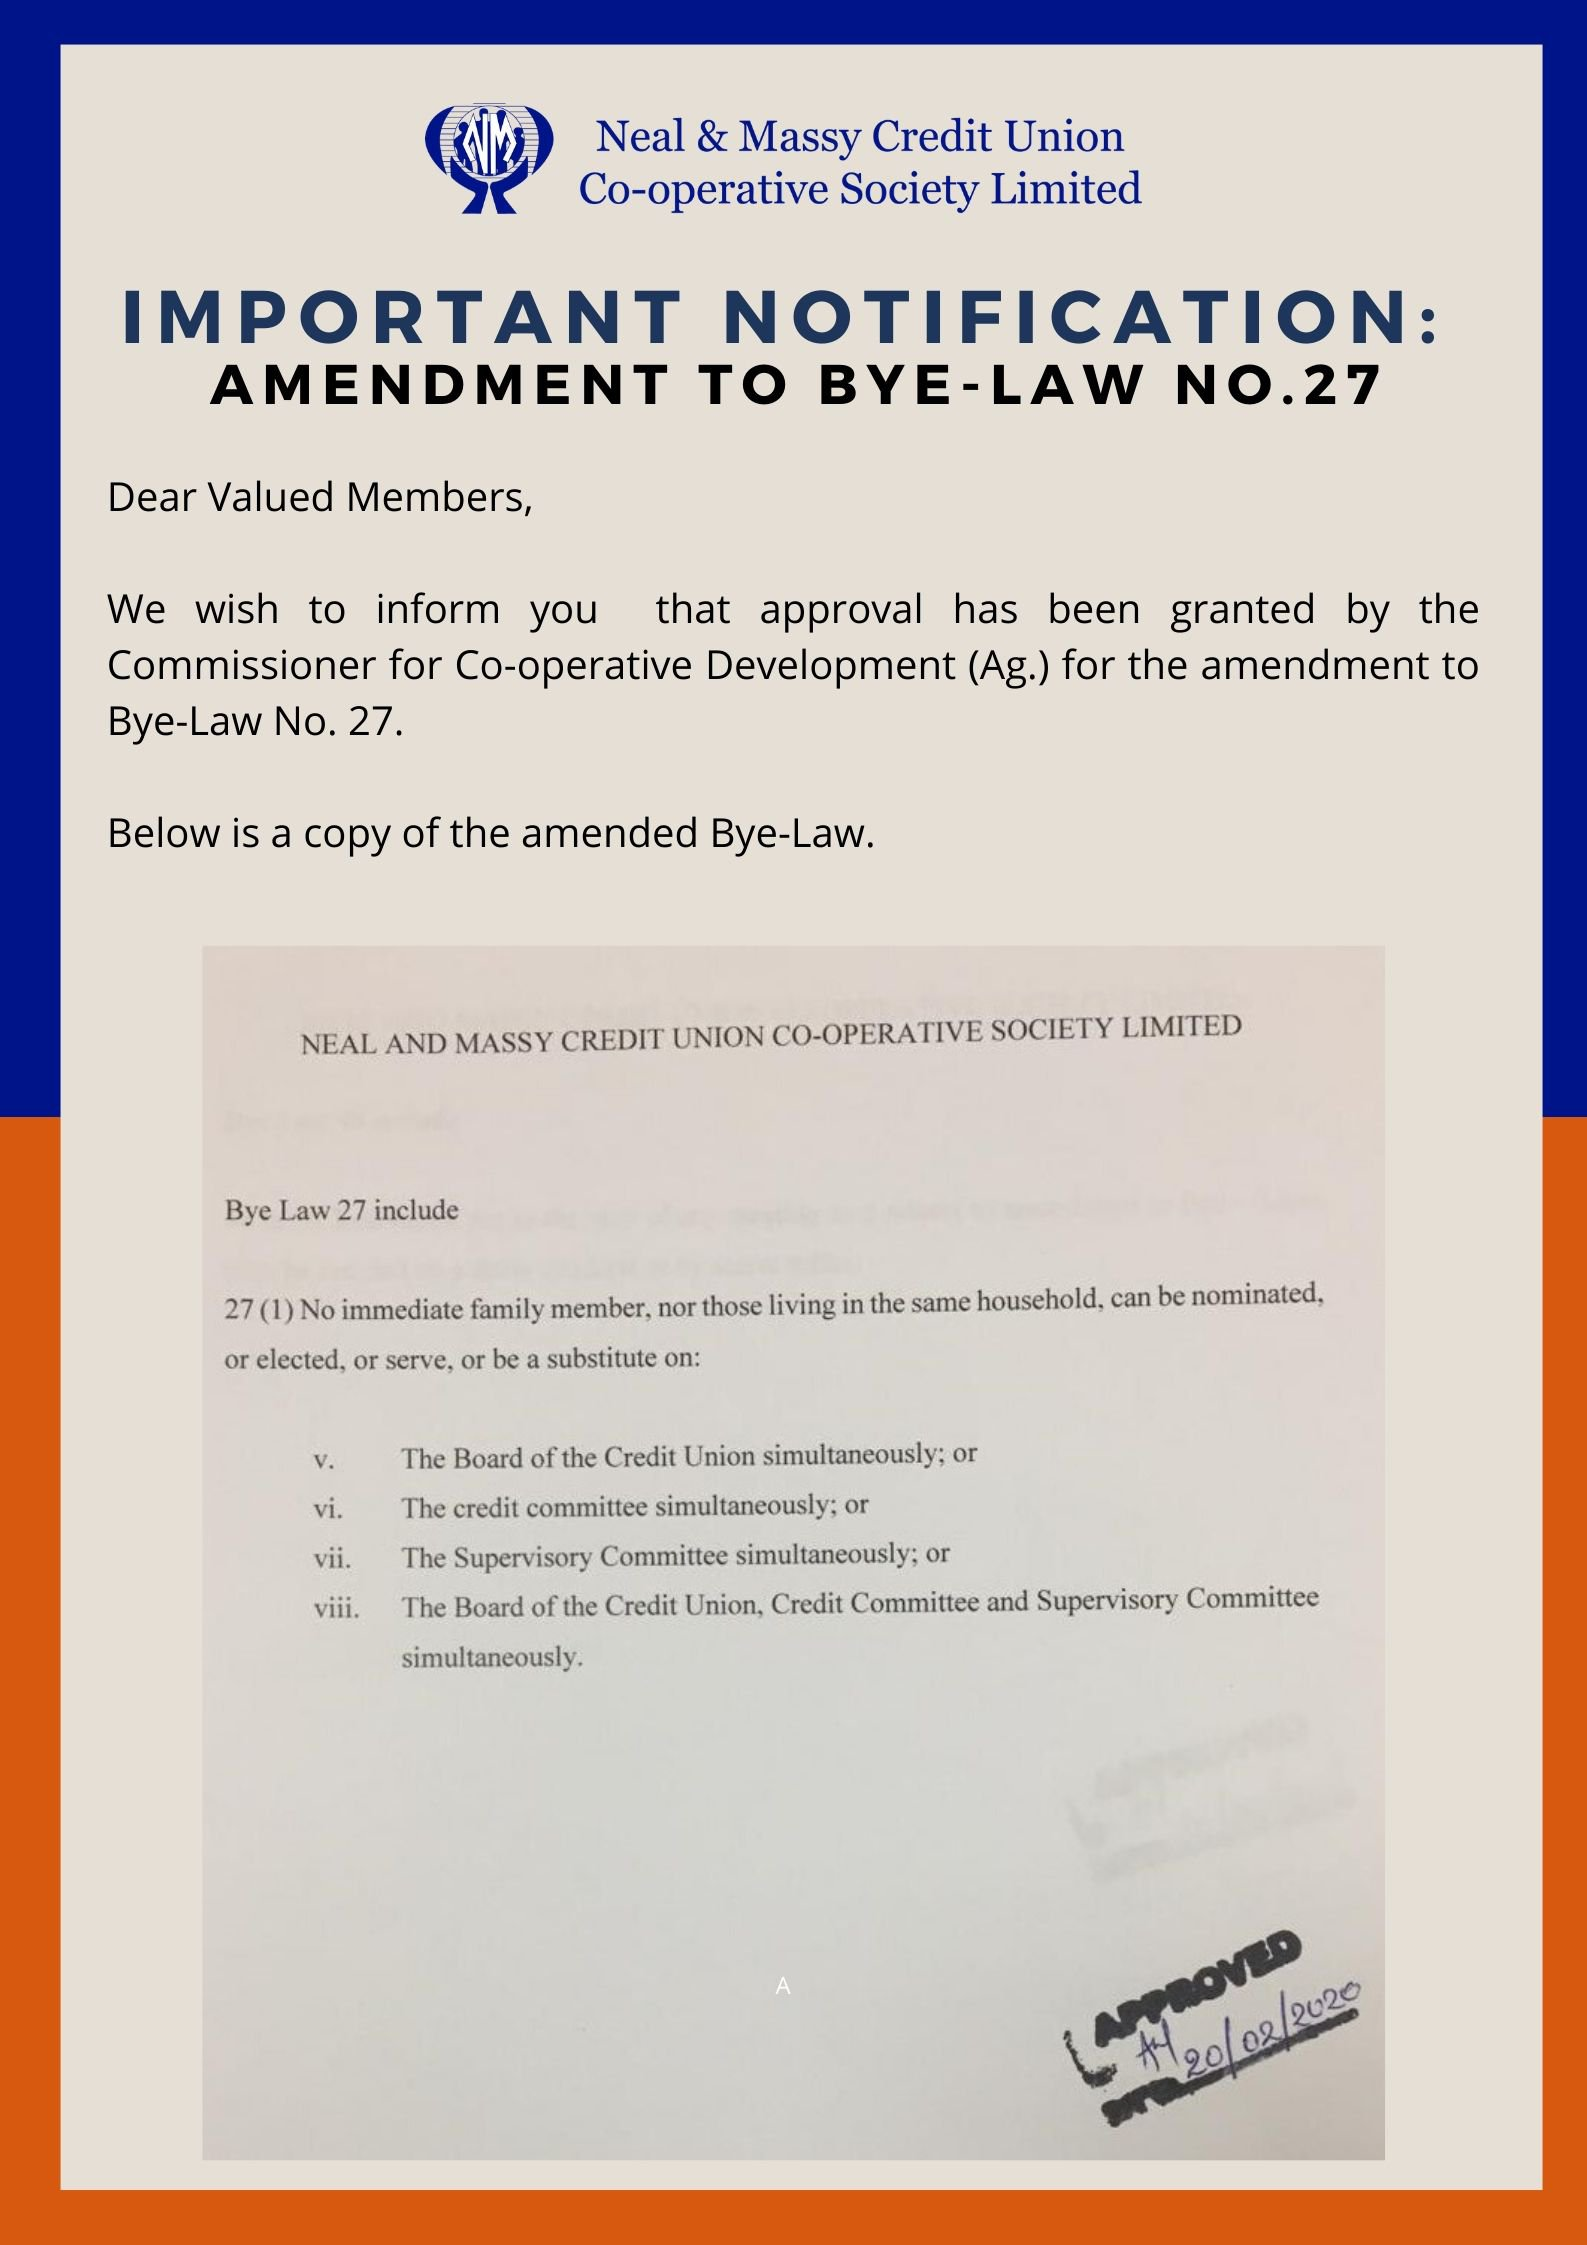 IMPORTANT NOTIFICATION:  AMENDMENT TO BYE-LAW no.27